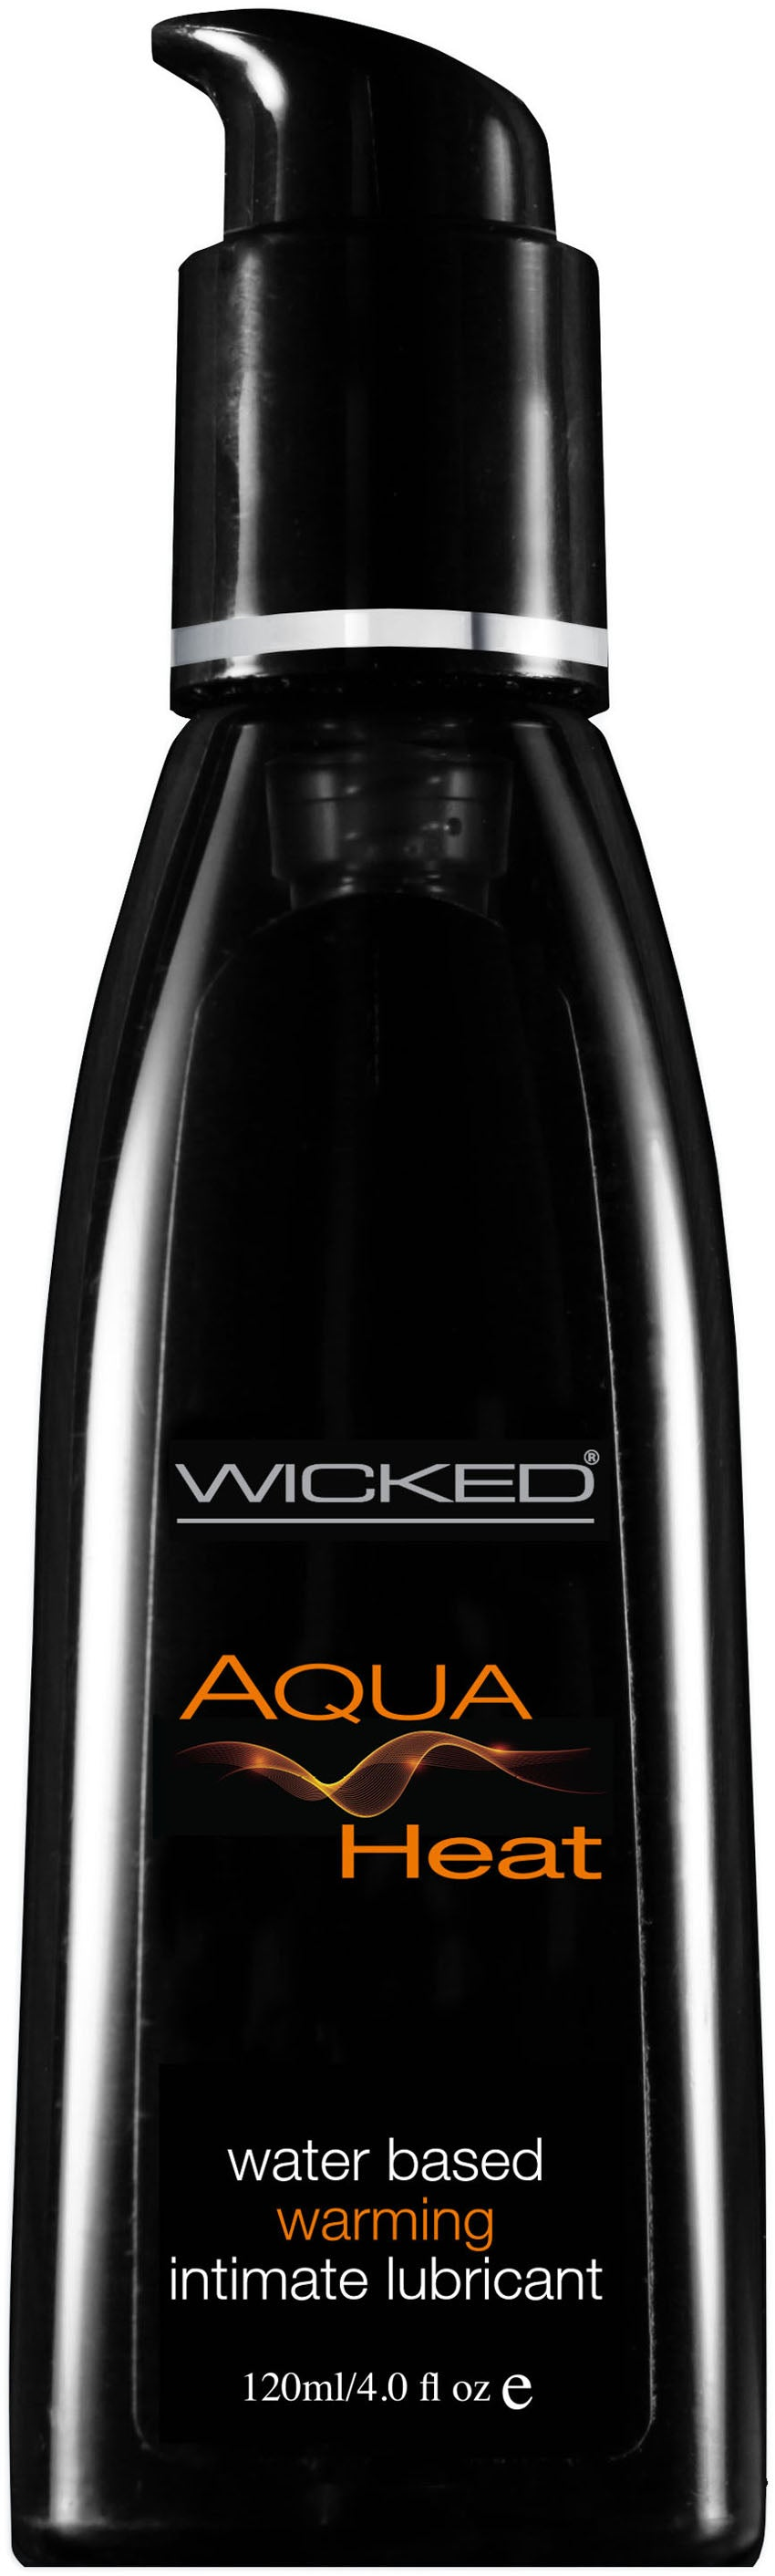 Wicked Aqua Heat Water Based Warming Lubricant 4.0 Oz - My sheree and More